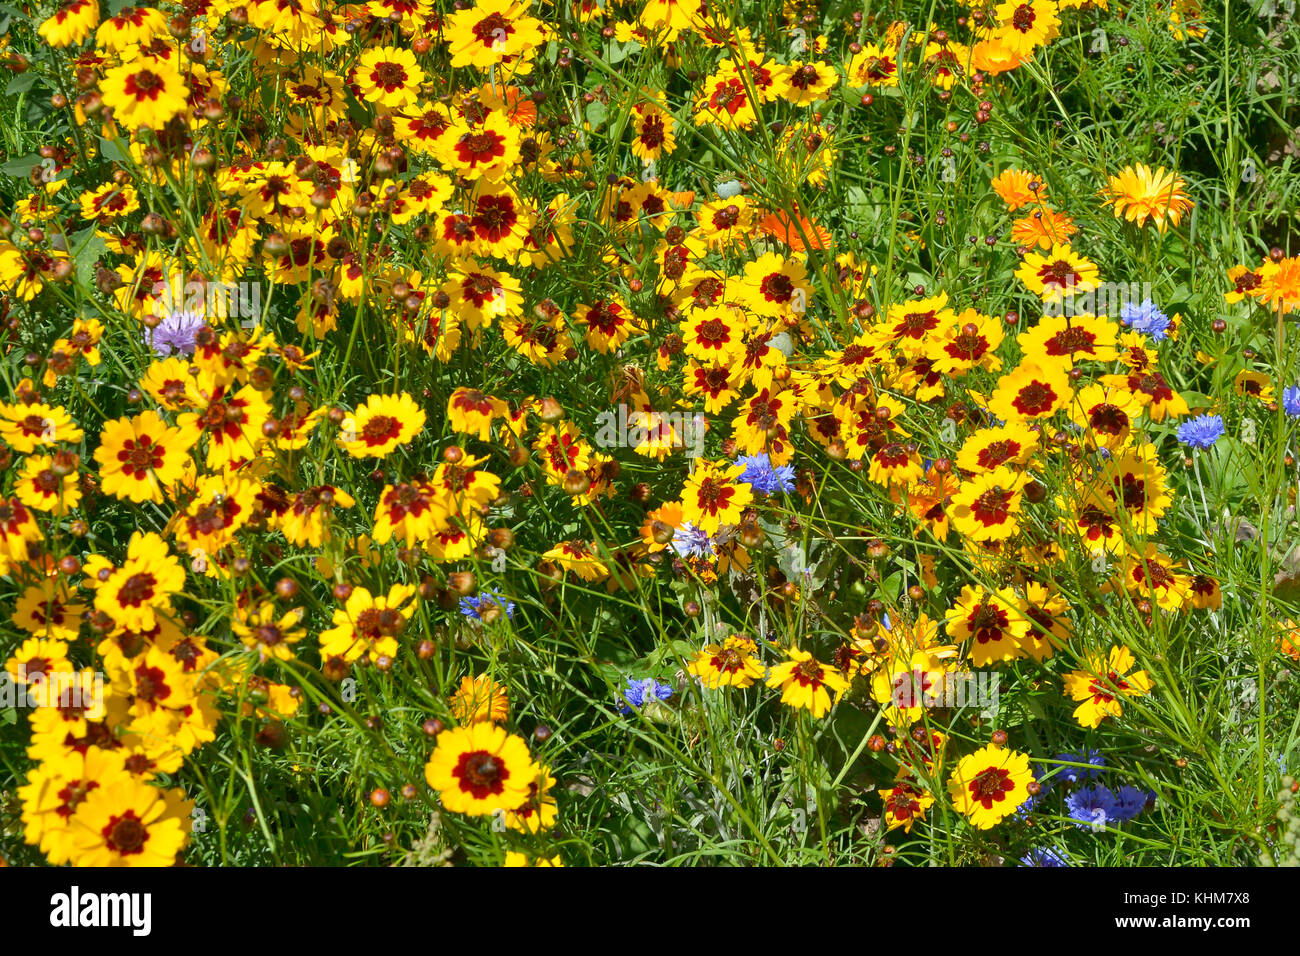 A golden naturaly planted flower meadow with Coreopsis , Cornflowers and marigolds Stock Photo